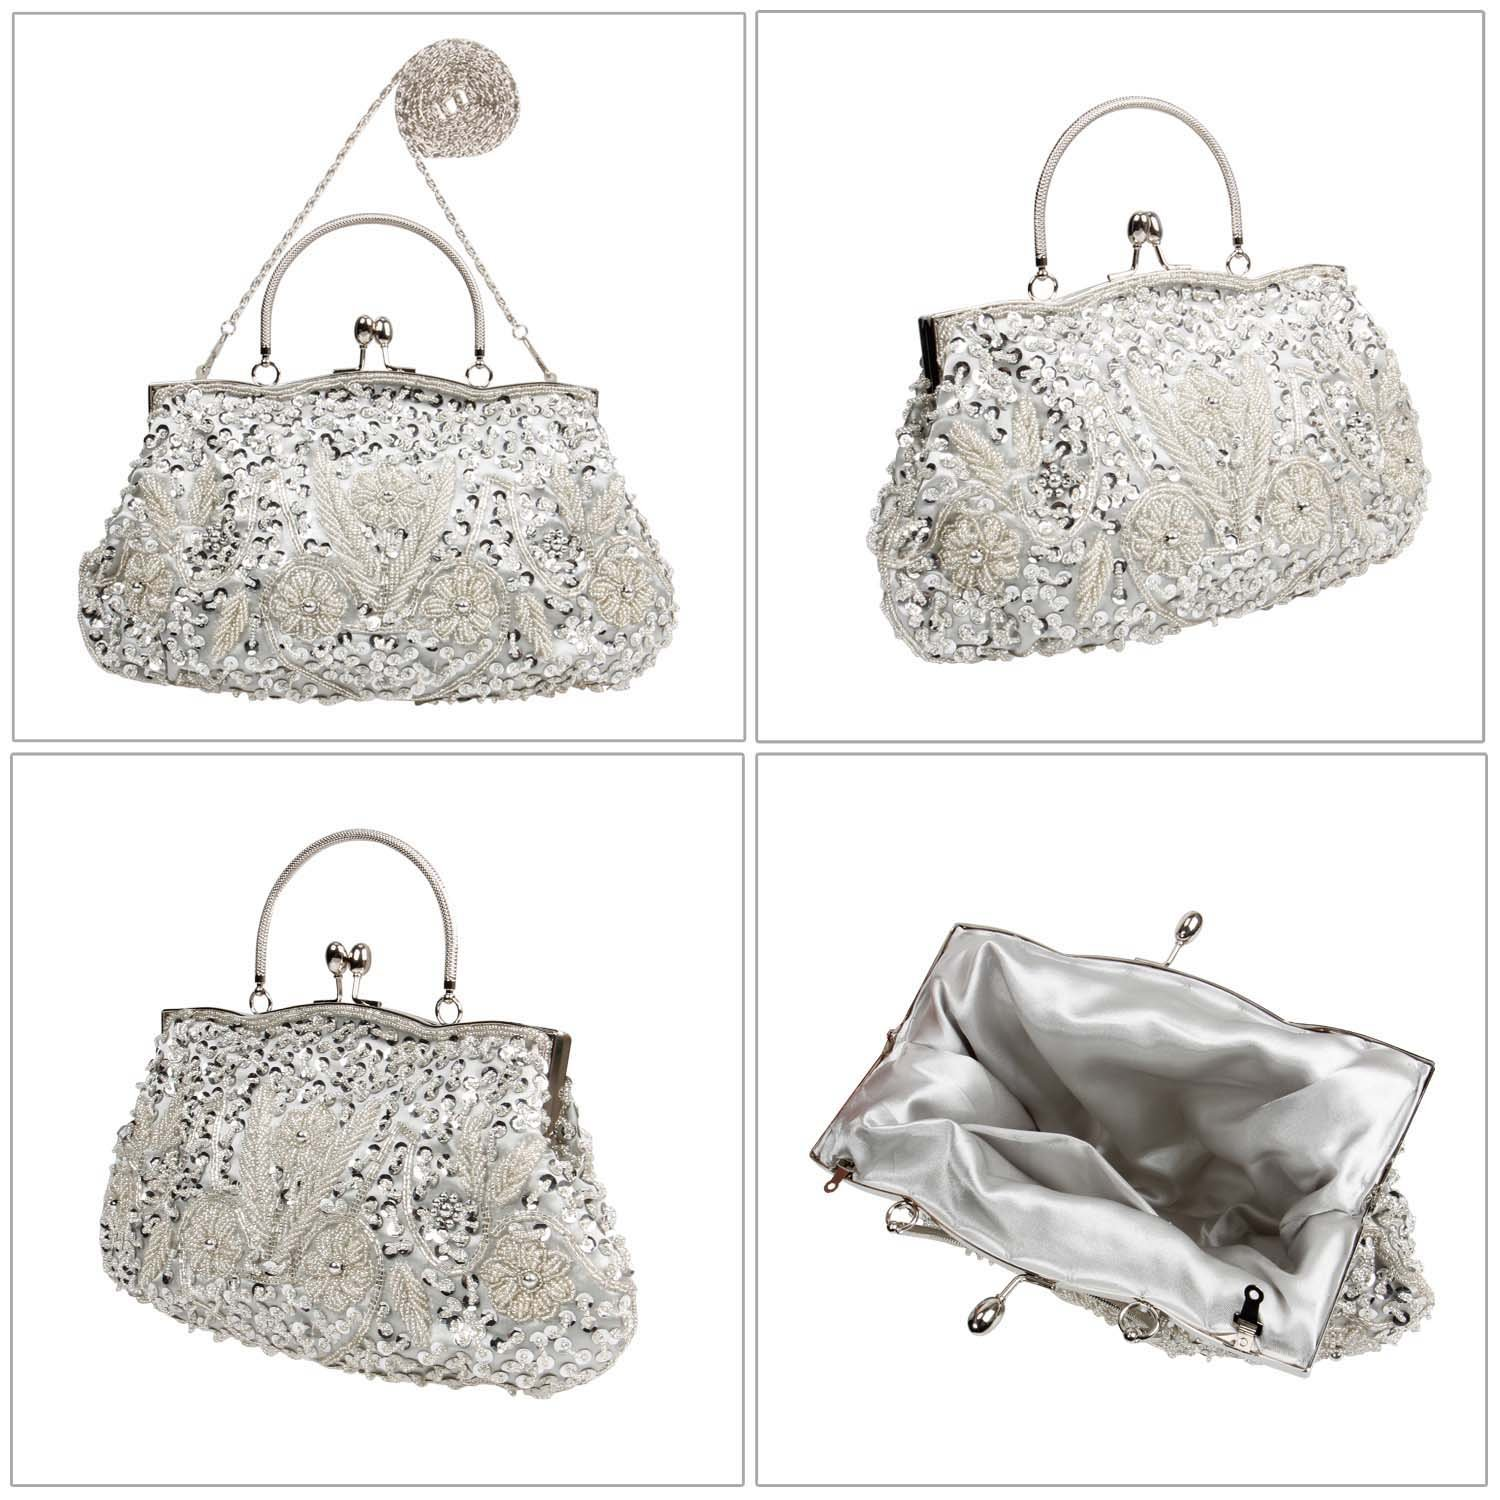 BMC Silver Beaded Sequin Design Metal Frame Kissing Lock Satin Clasp Interior Evening Clutch - Exuding Eloquence Collection by Bundle Monster (Image #2)